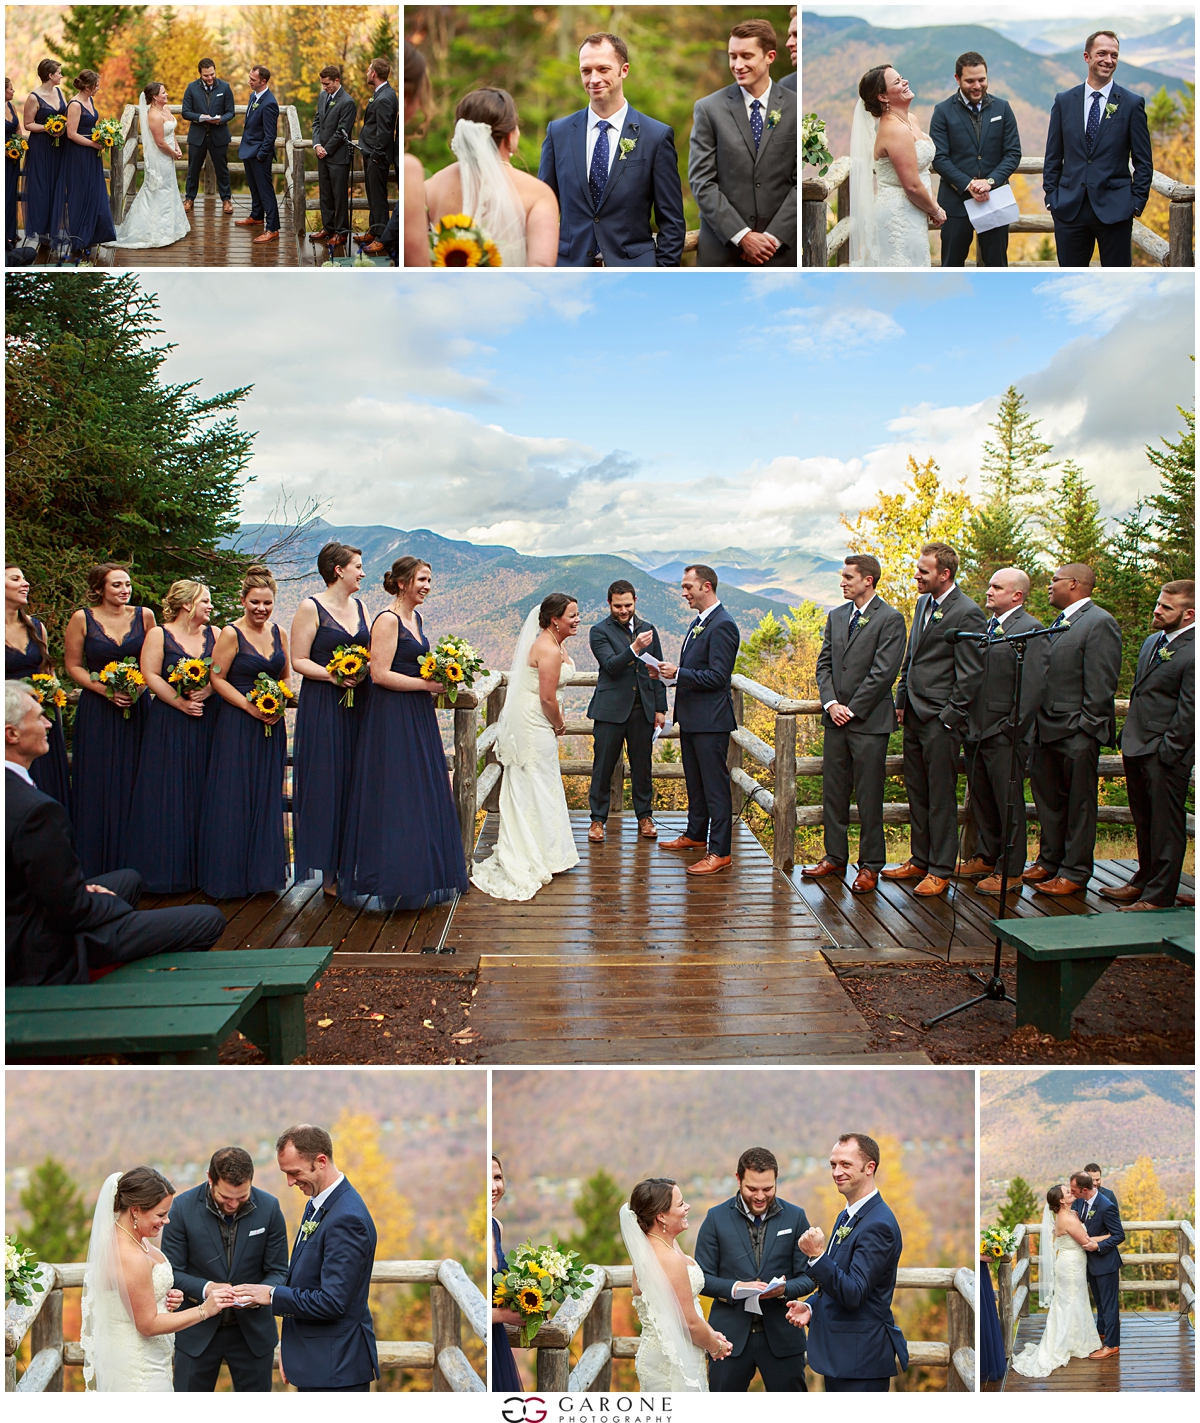 Garone_Photography_Loon_Mountain_Wedding_NH_White_Mountain_Wedding_Photography_0021.jpg